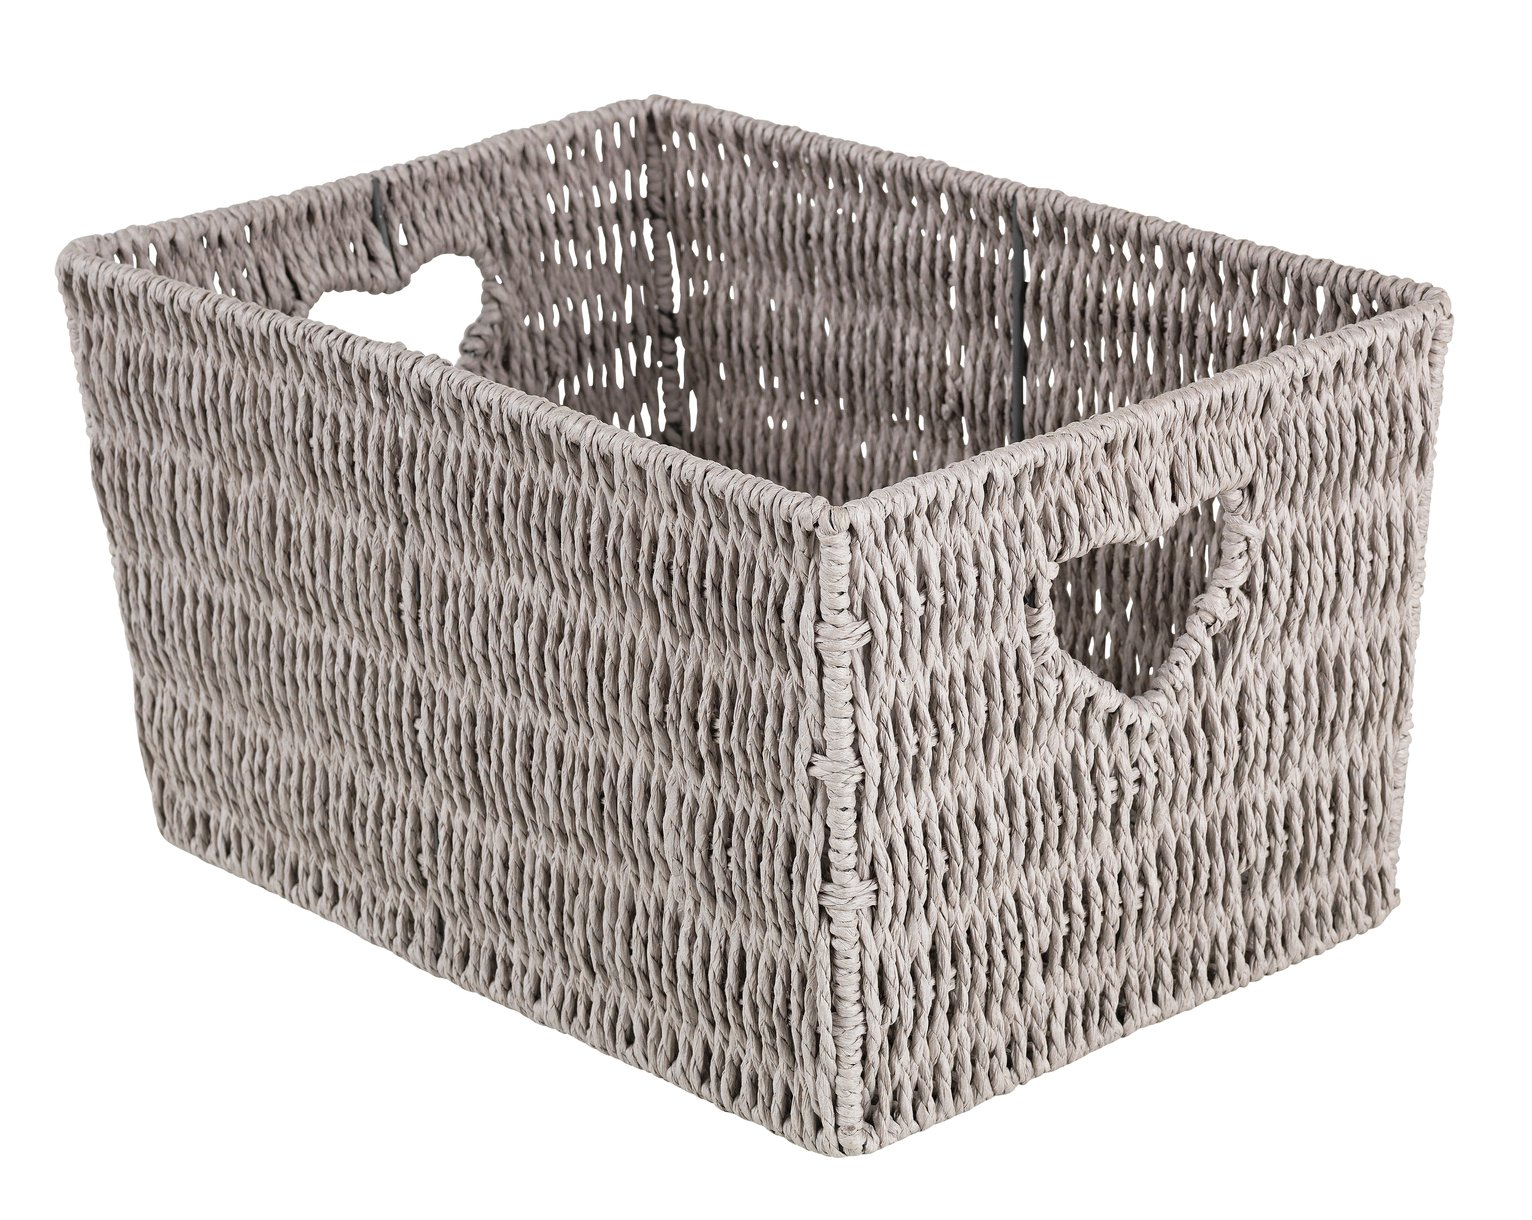 Argos Home Large Woven Heart Storage Basket